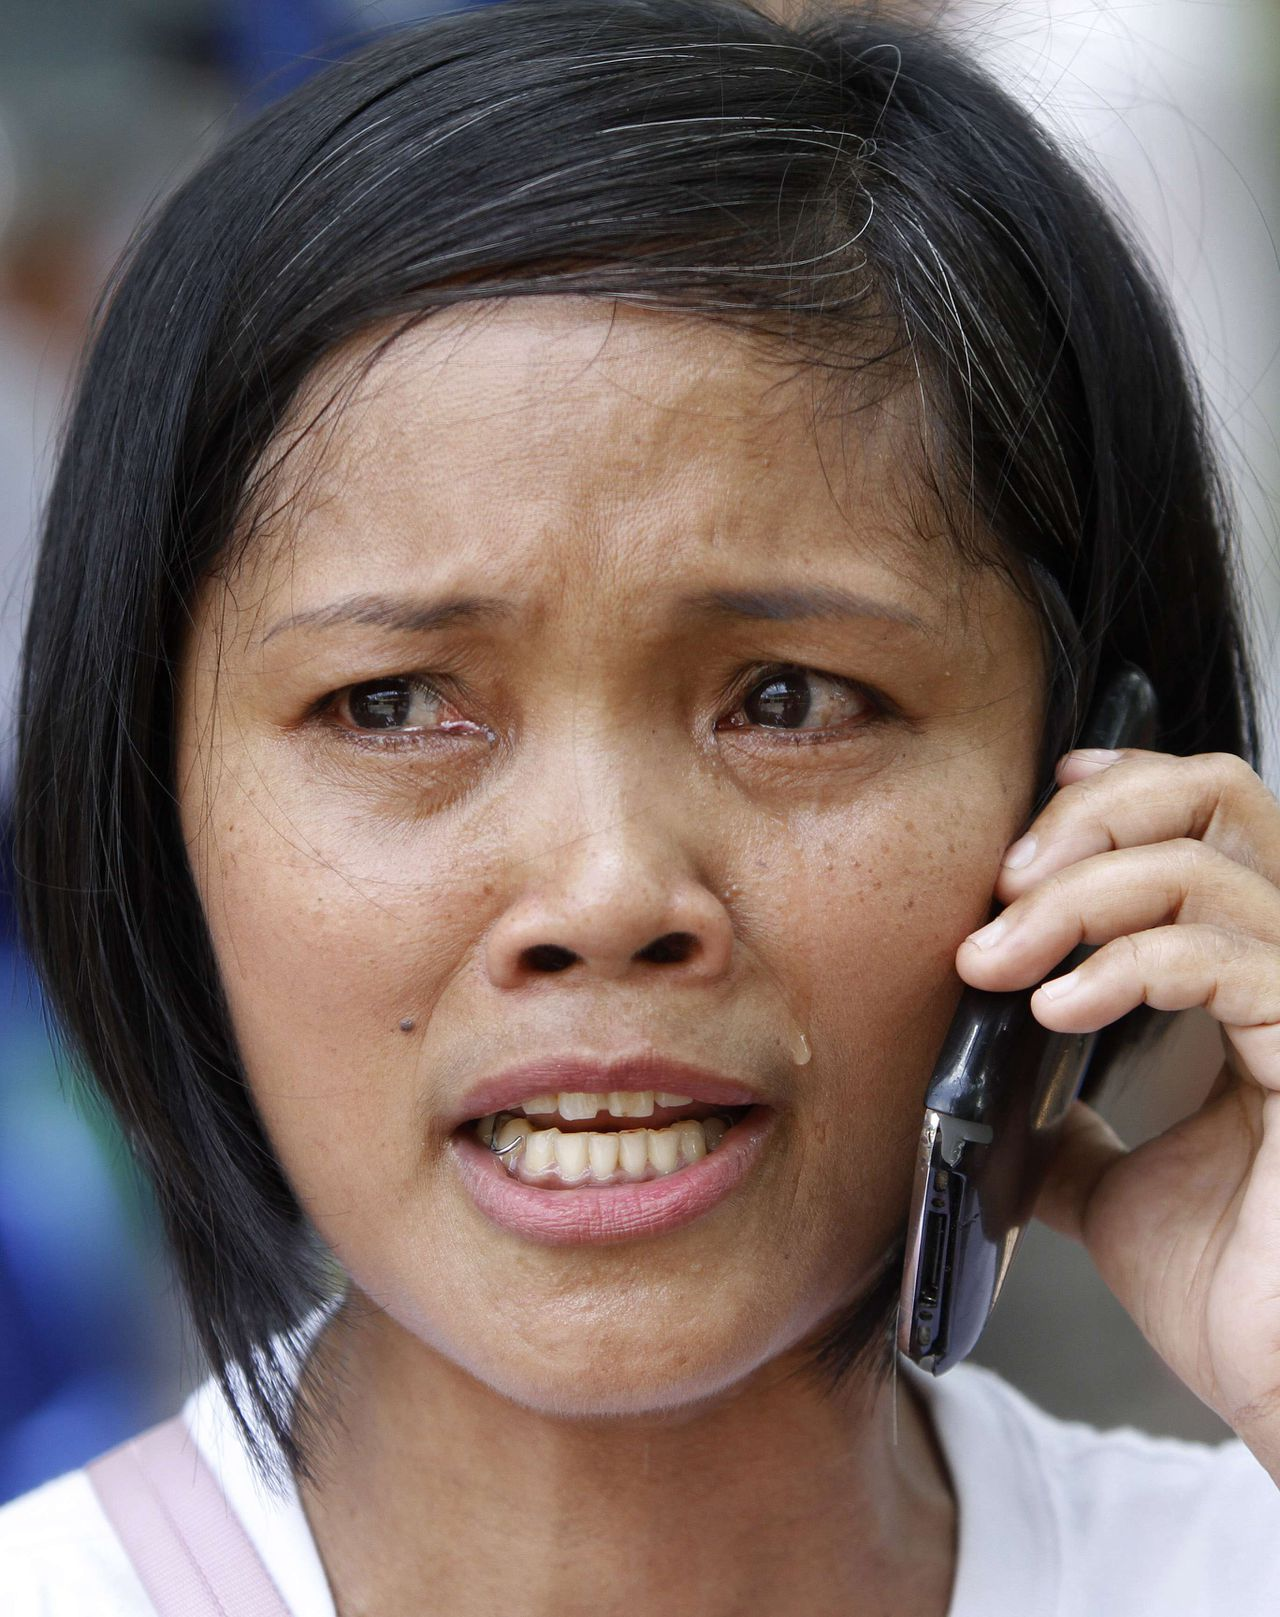 Gina Tubo, a supporter of Filipino boxer Manny Pacquiao, cries as she is being interviewed over the phone by a reporter following Pacquiao's loss to Timothy Bradley Jr. of the U.S., during a free viewing of the fight in Marikina City, Metro Manila June 10, 2012. Pacquiao was stunned by American Bradley on Saturday, surrendering his WBO welterweight title on a controversial split decision at the MGM Grand Garden Arena. It was Pacquiao's first defeat since he lost to Erik Morales in Las Vegas in March 2005, ending a run of 15 consecutive wins by the Filipino who has won world titles in an unprecedented eight weight divisions. REUTERS/Cheryl Ravelo (PHILIPPINES - Tags: SPORT BOXING TPX IMAGES OF THE DAY)